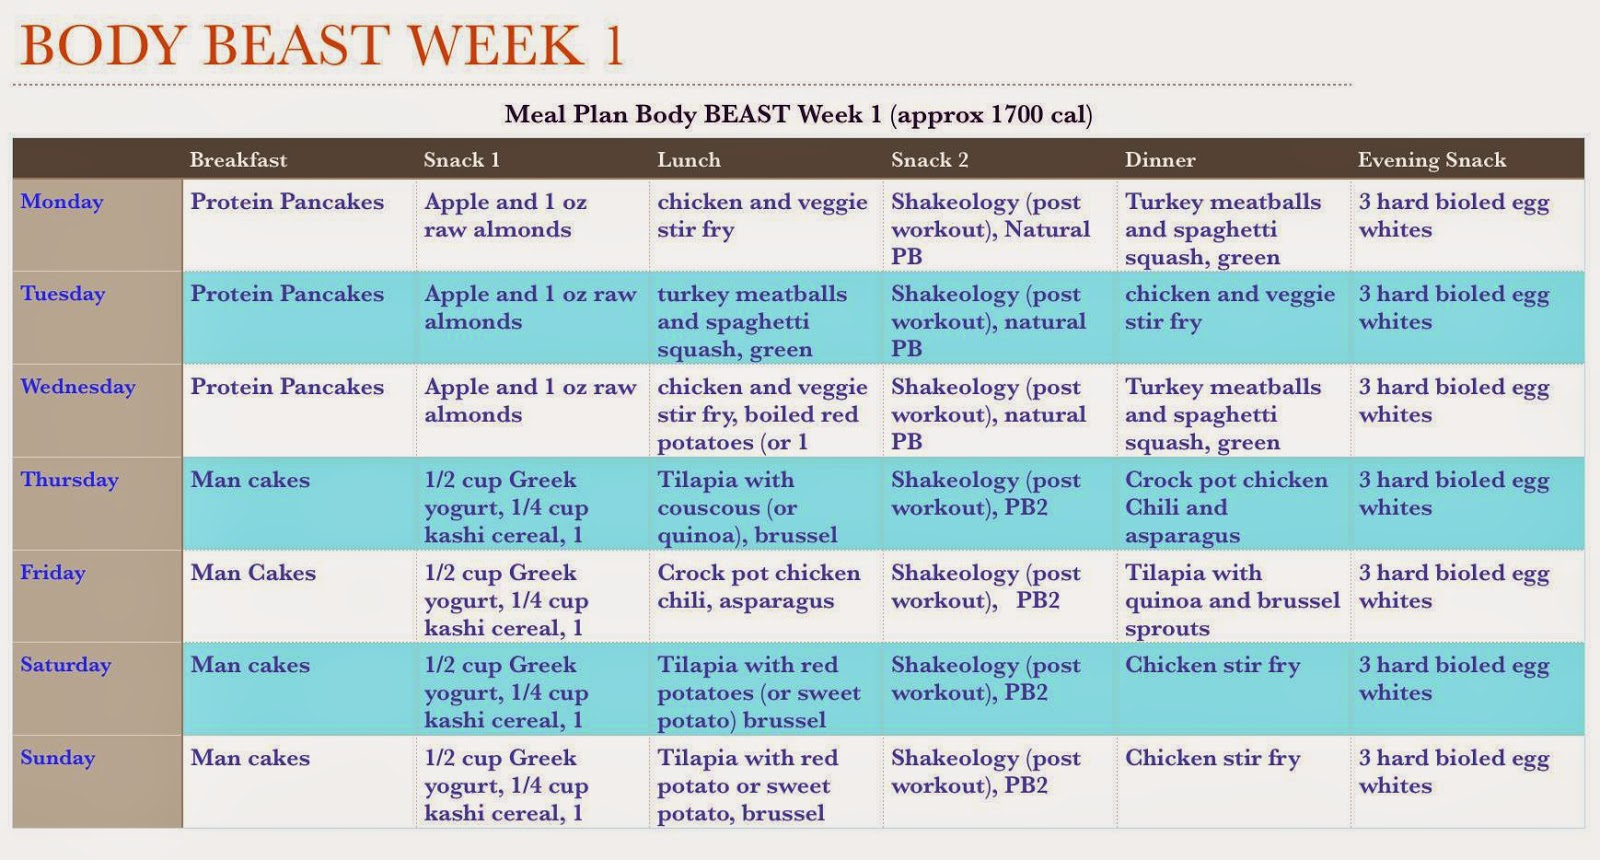 ... meal plans for weight lifting - Free diet plans online that work